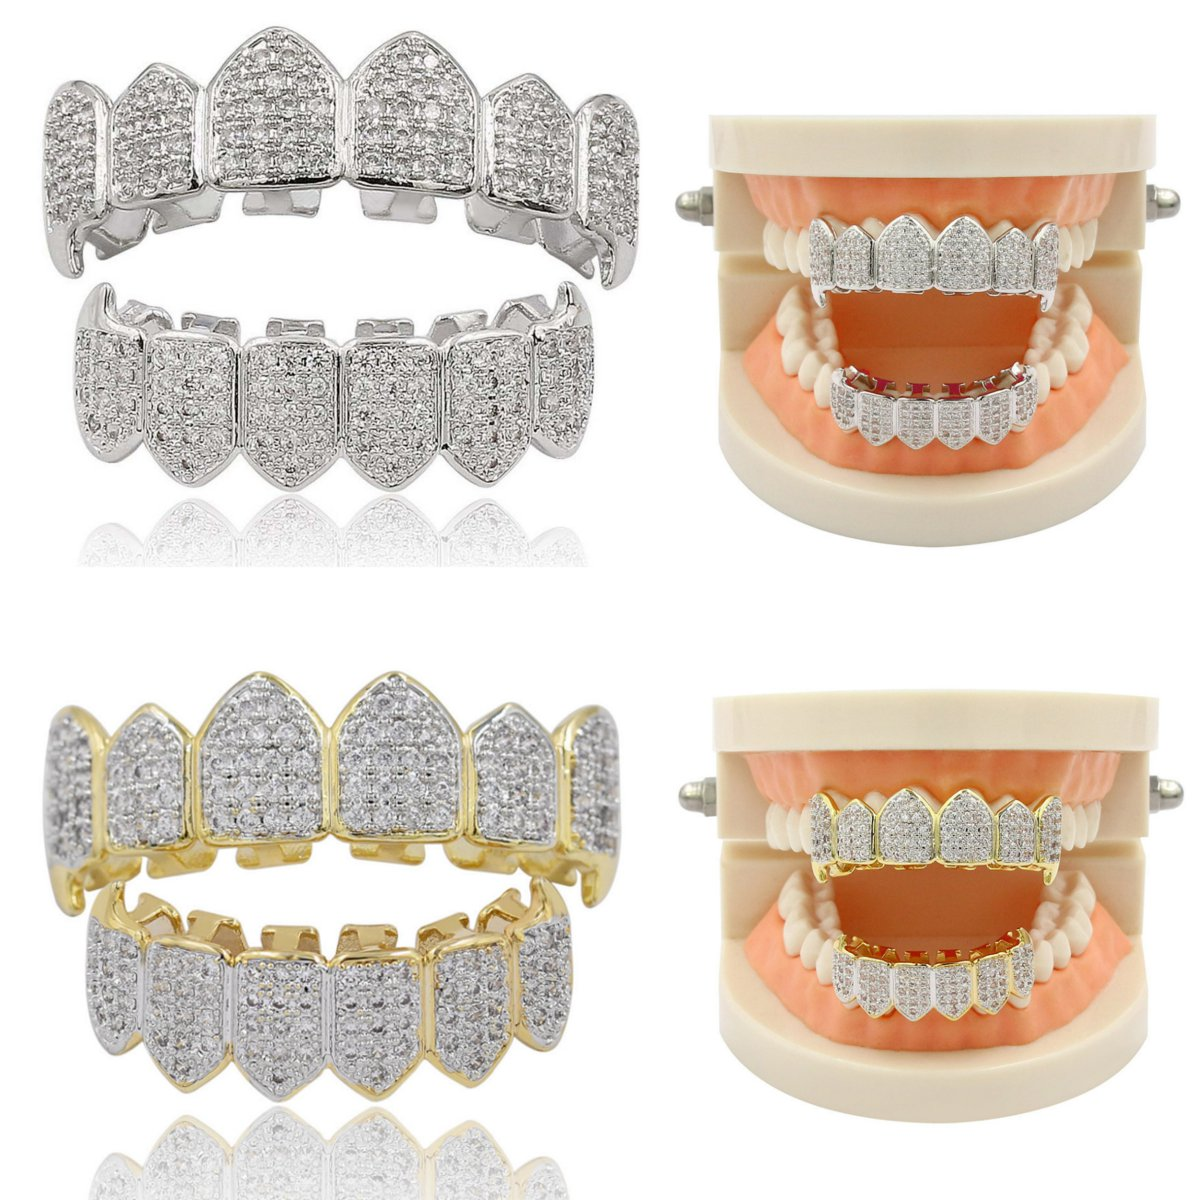 Hip Hop Gold Silver Teeth Grillz Top Bottom Grills Dental Mouth Punk Teeth Caps Cosplay Party Tooth Rapper Jewelry Gift image